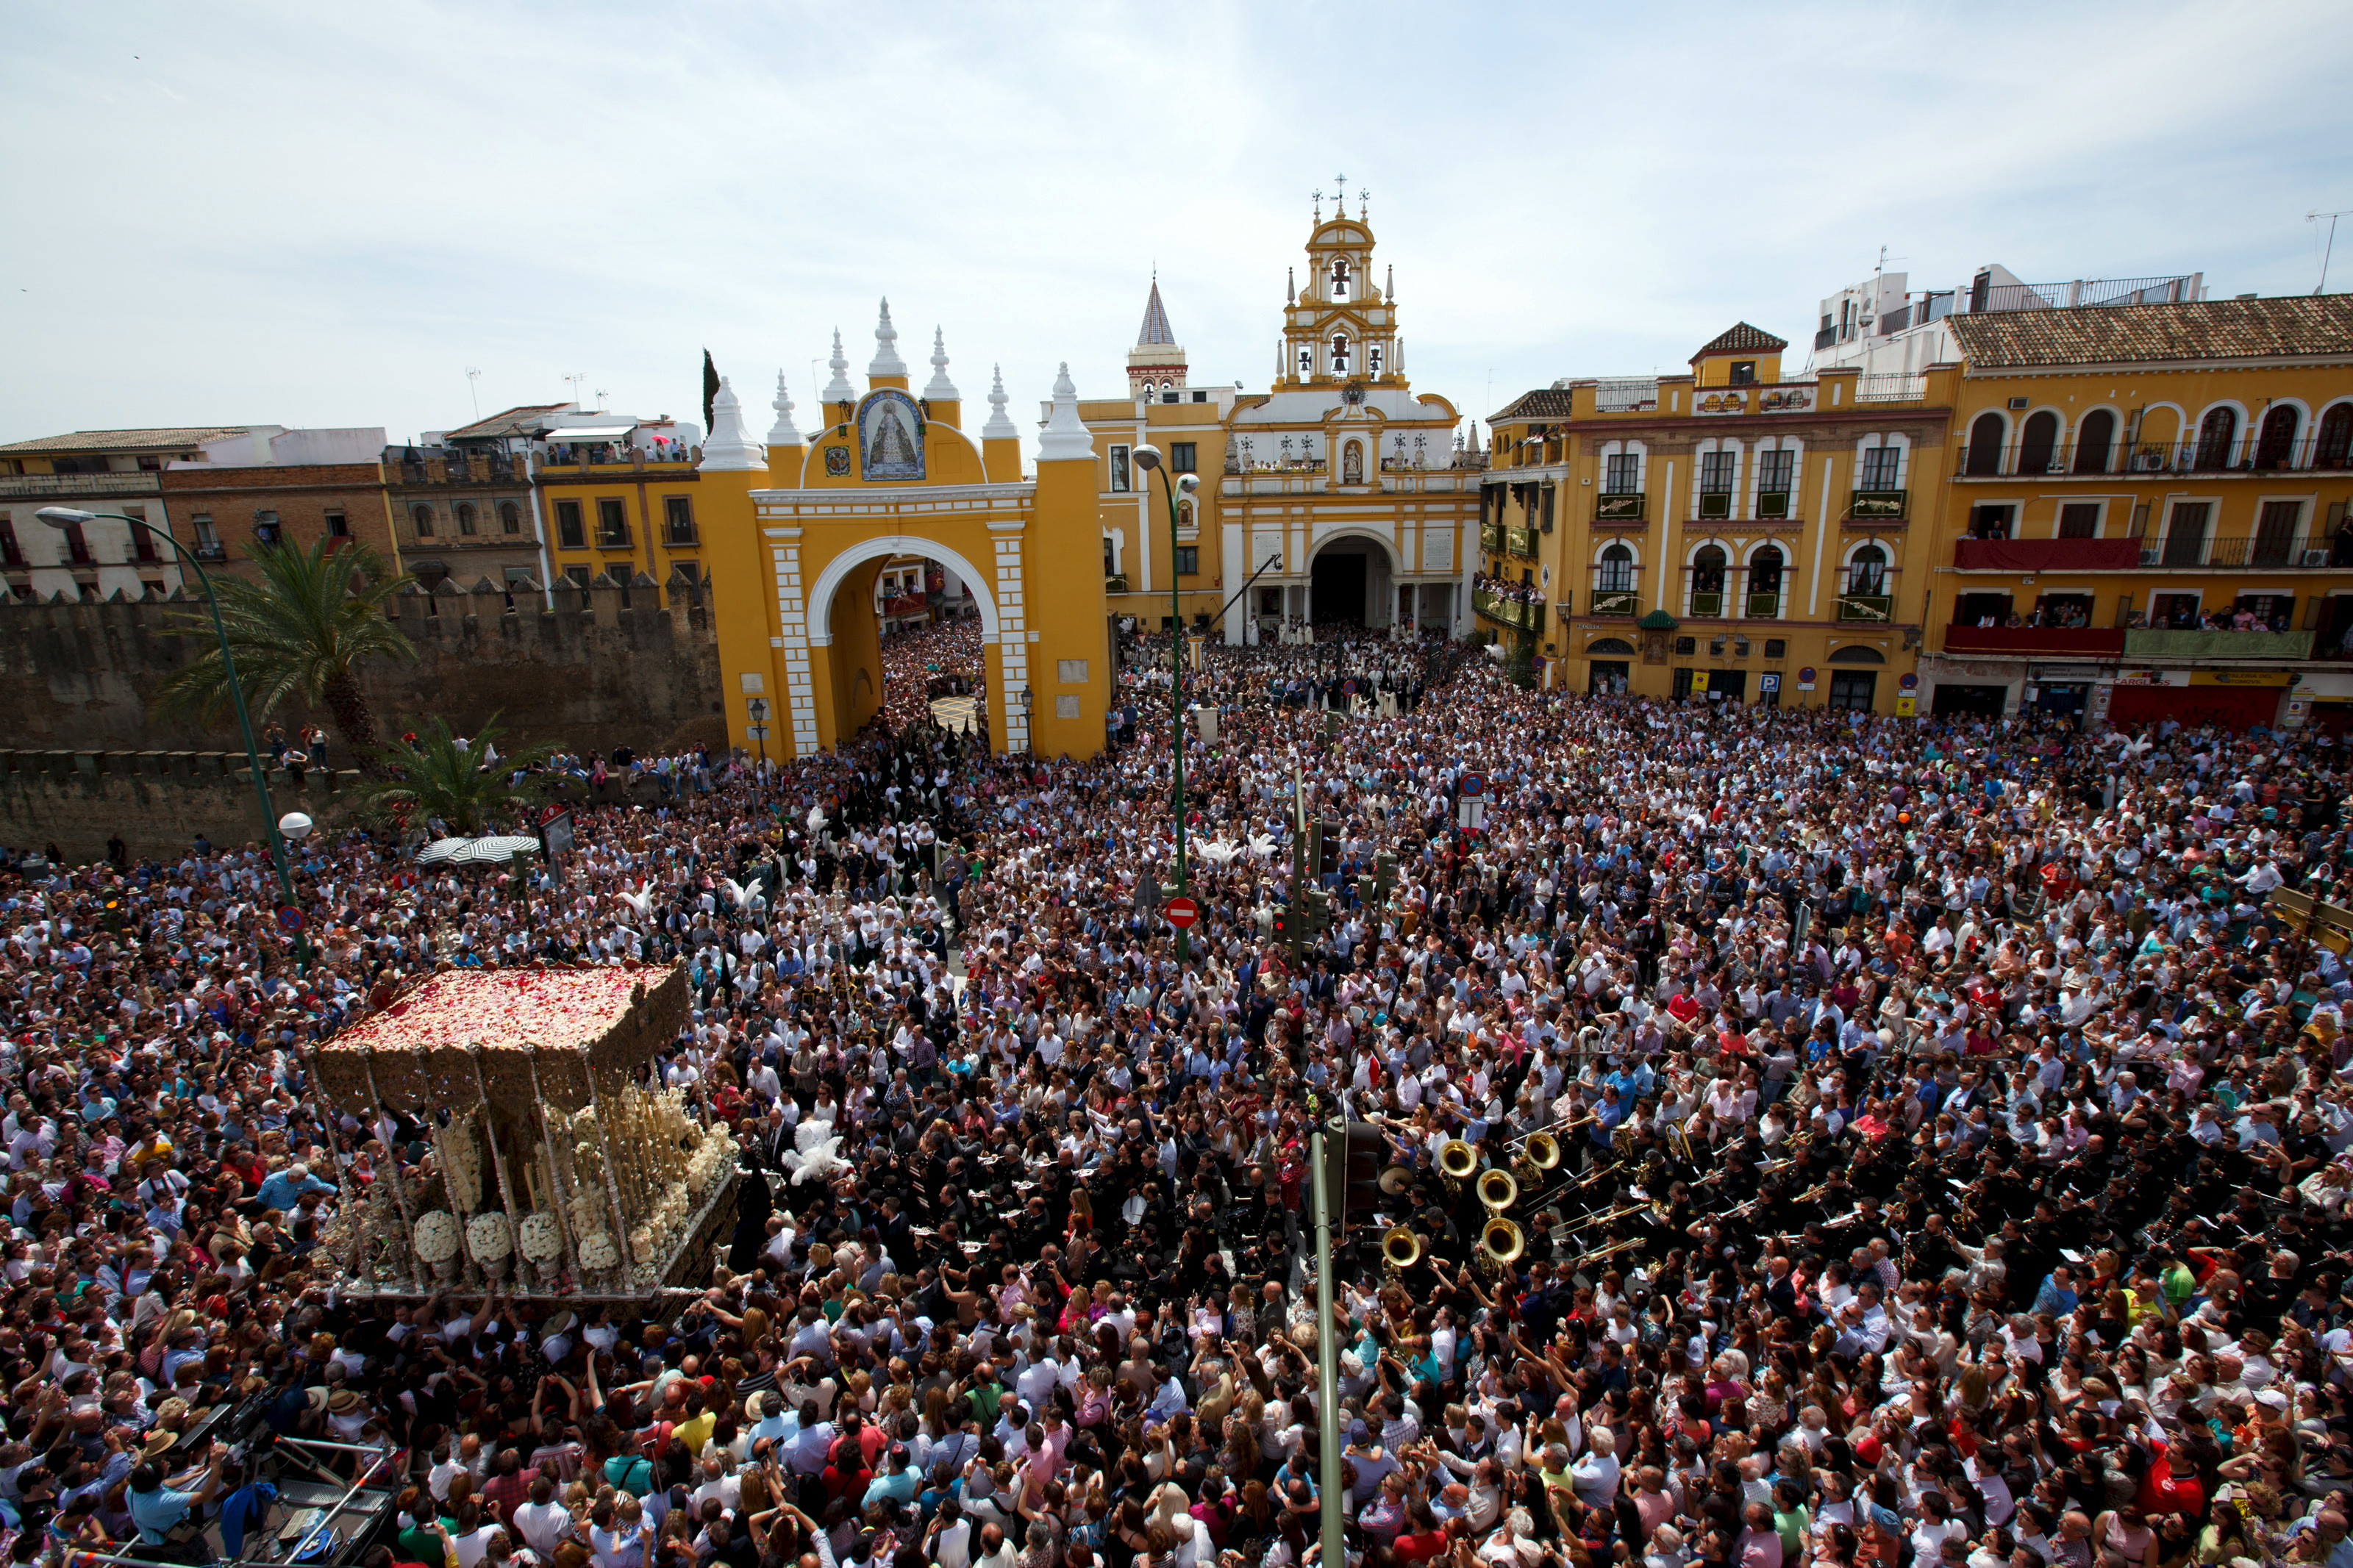 Holy Week Procession in Seville, Spain. Credit: Marcelo del Pozo/REUTERS.